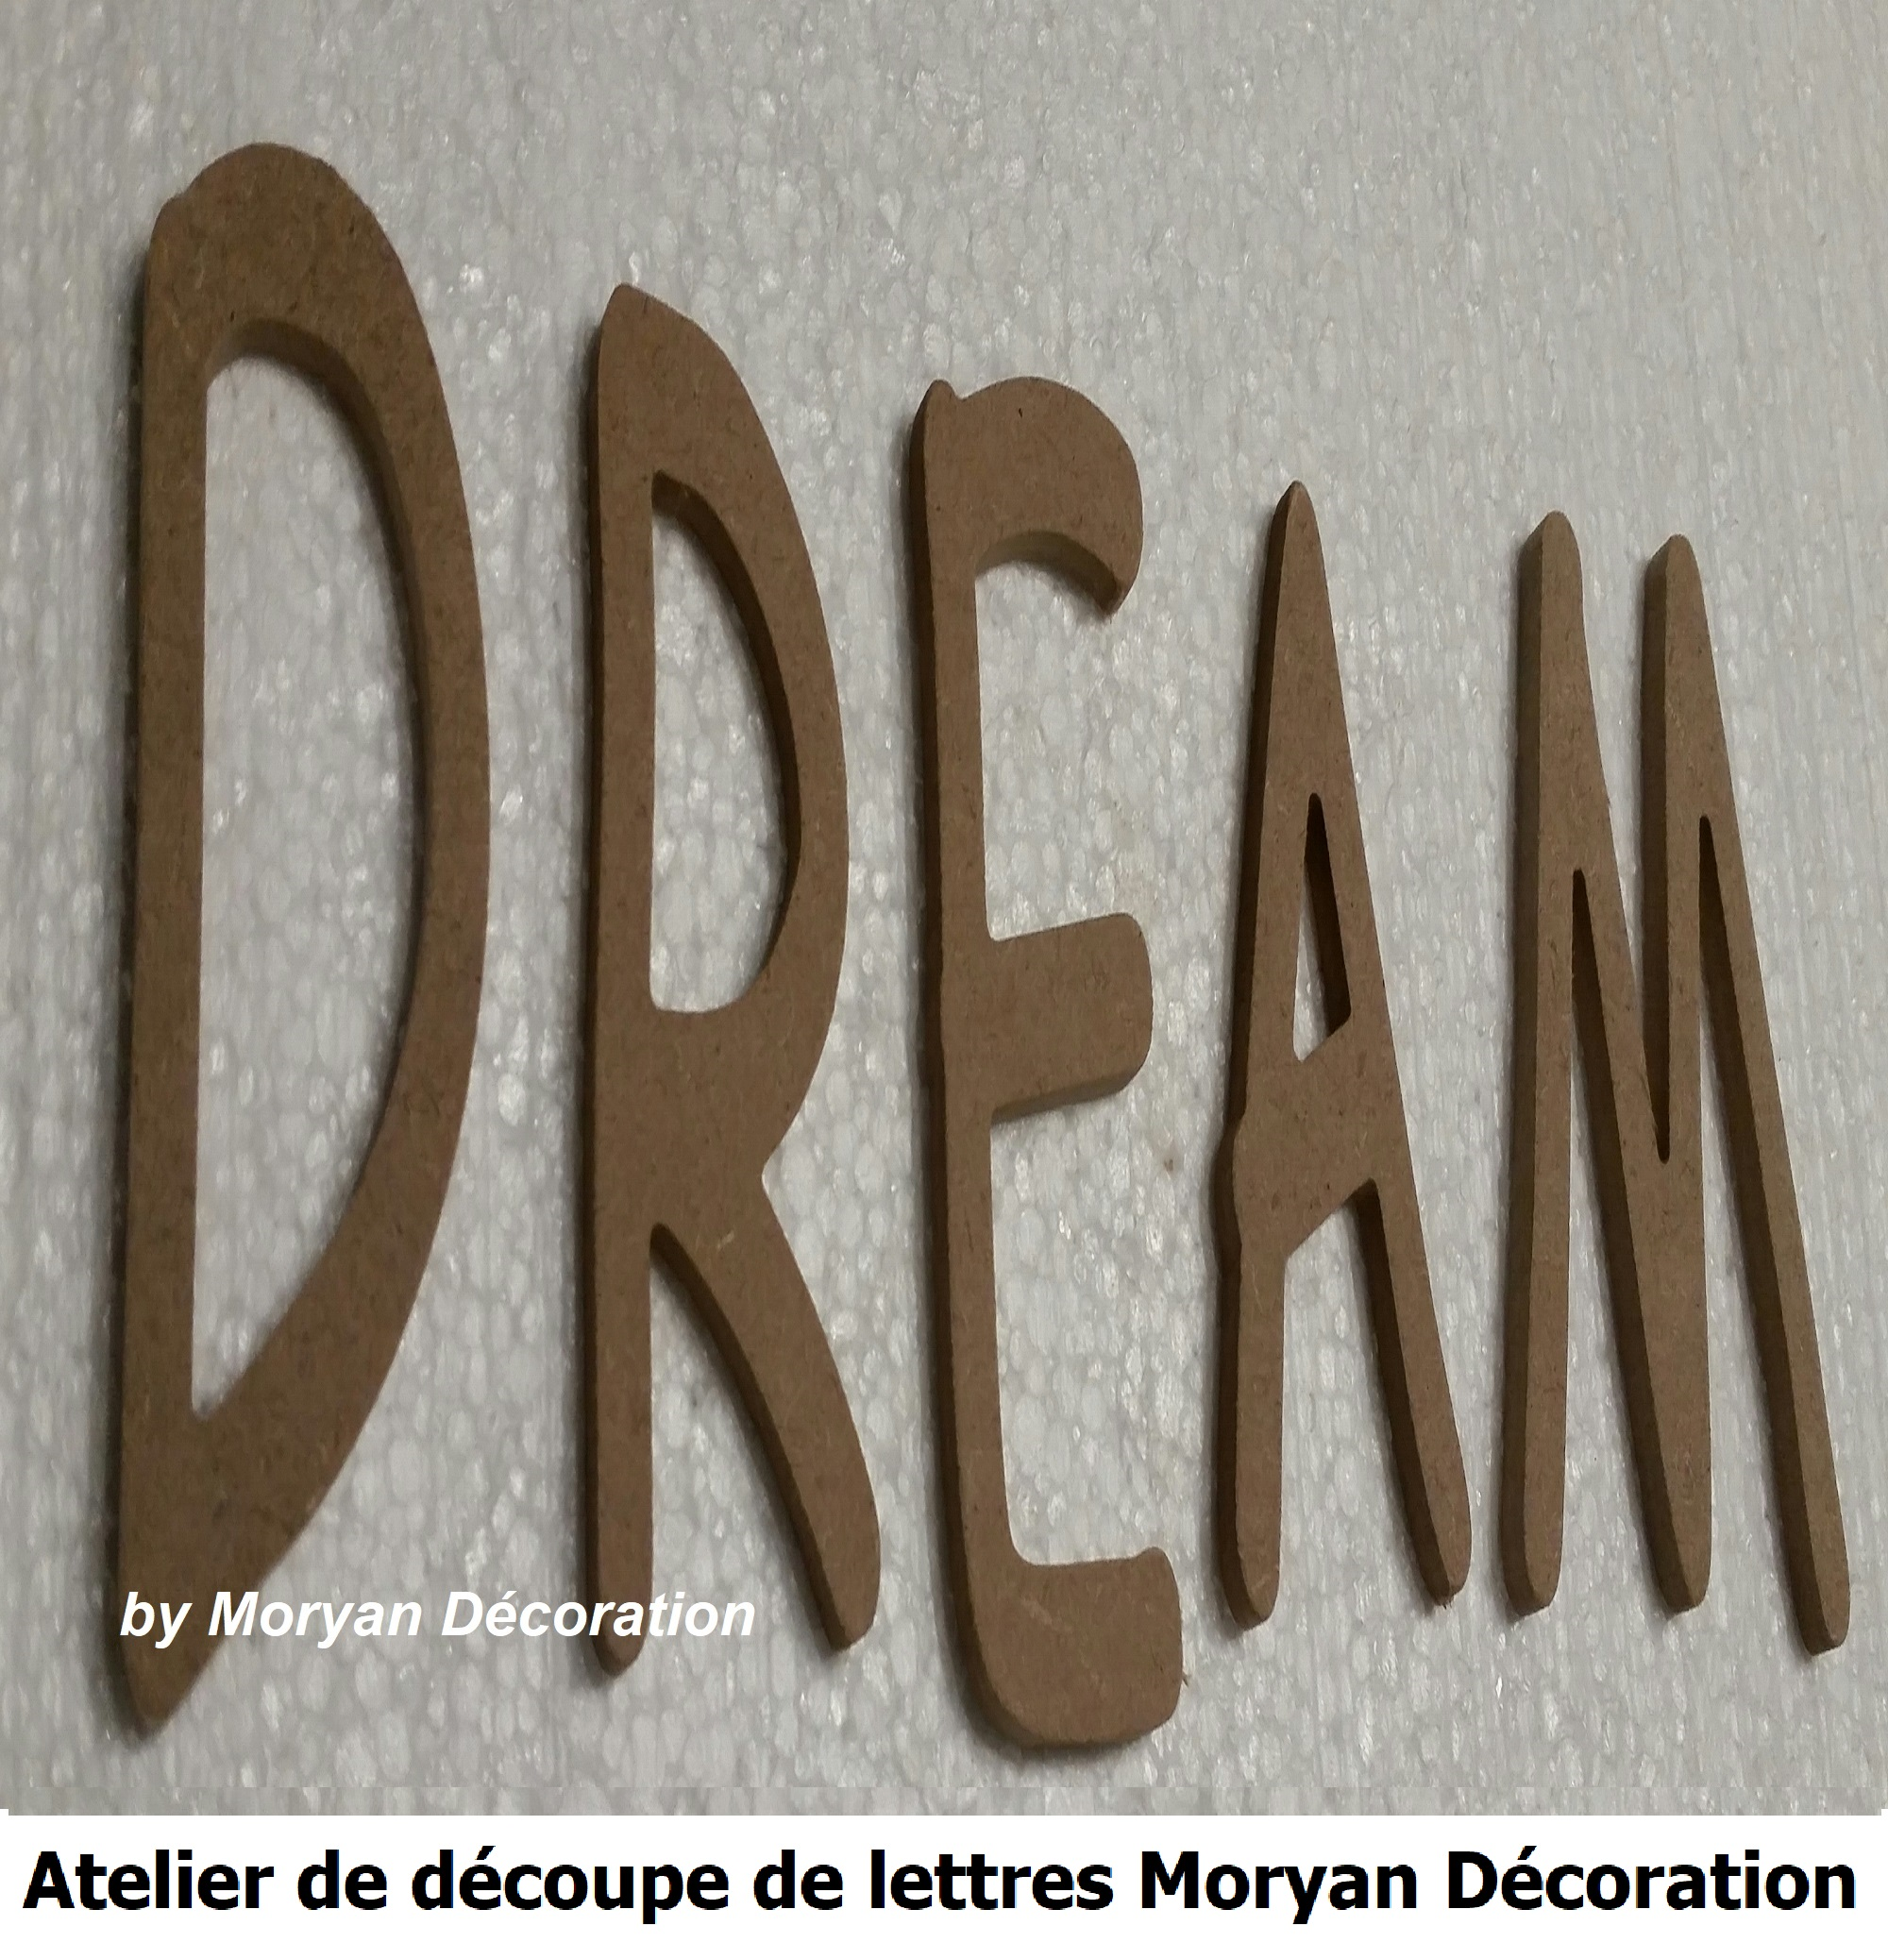 Lettre decorative DREAM